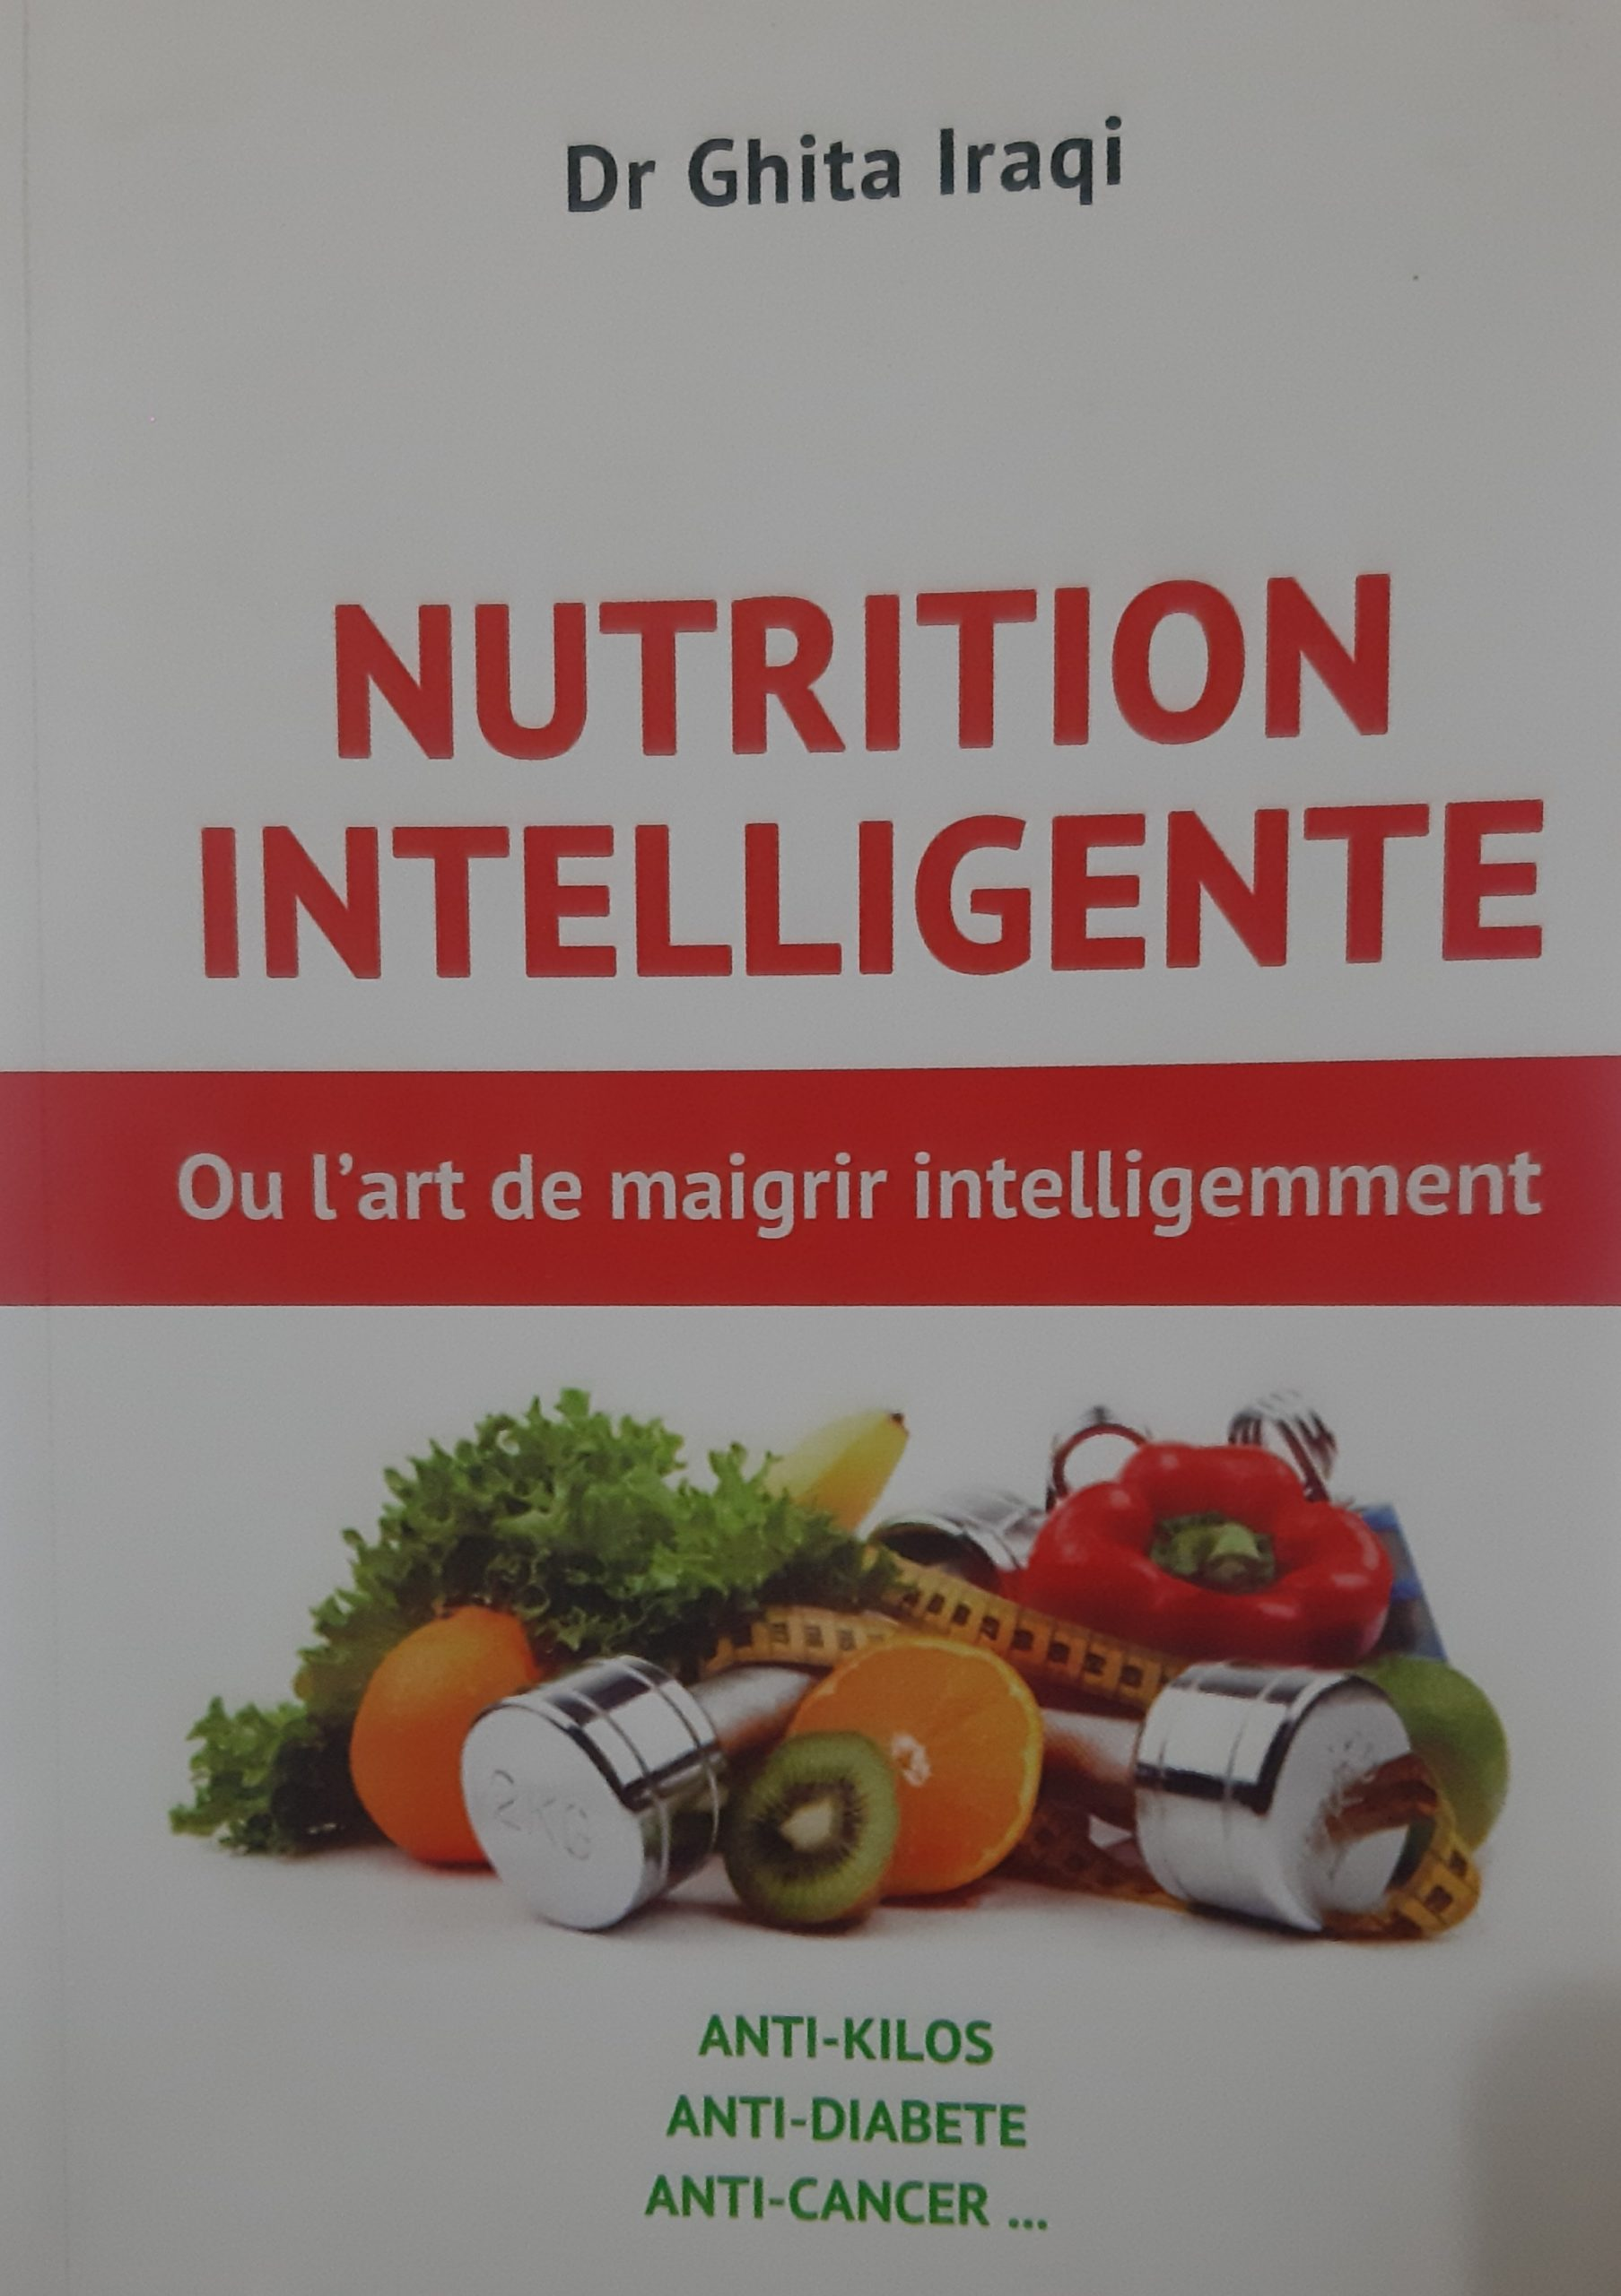 Nutrition intelligente, ou l'art de maigrir intelligemment